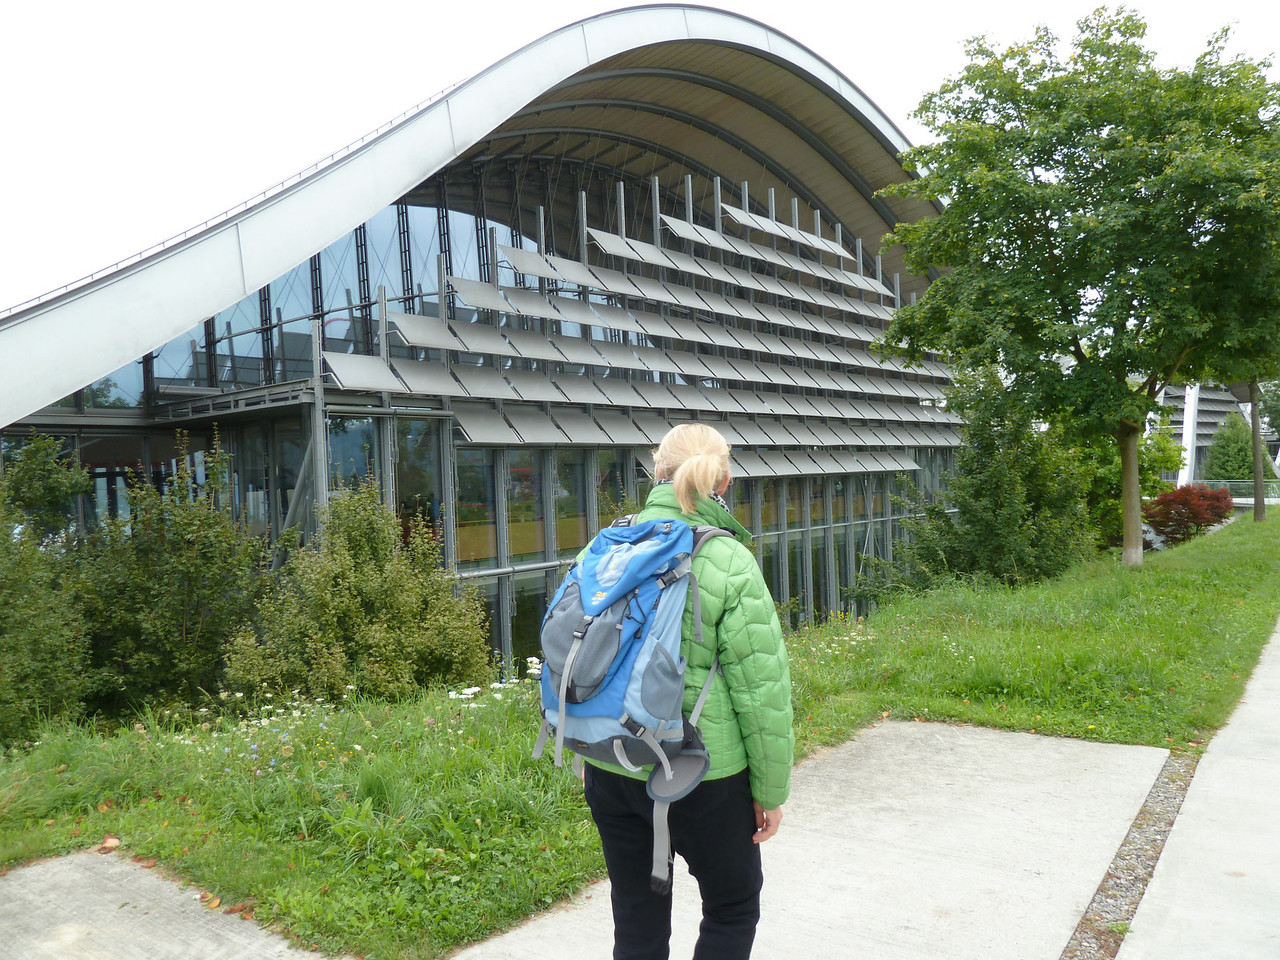 A visit to the Paul Klee Museum in Bern. He was born in Bern.